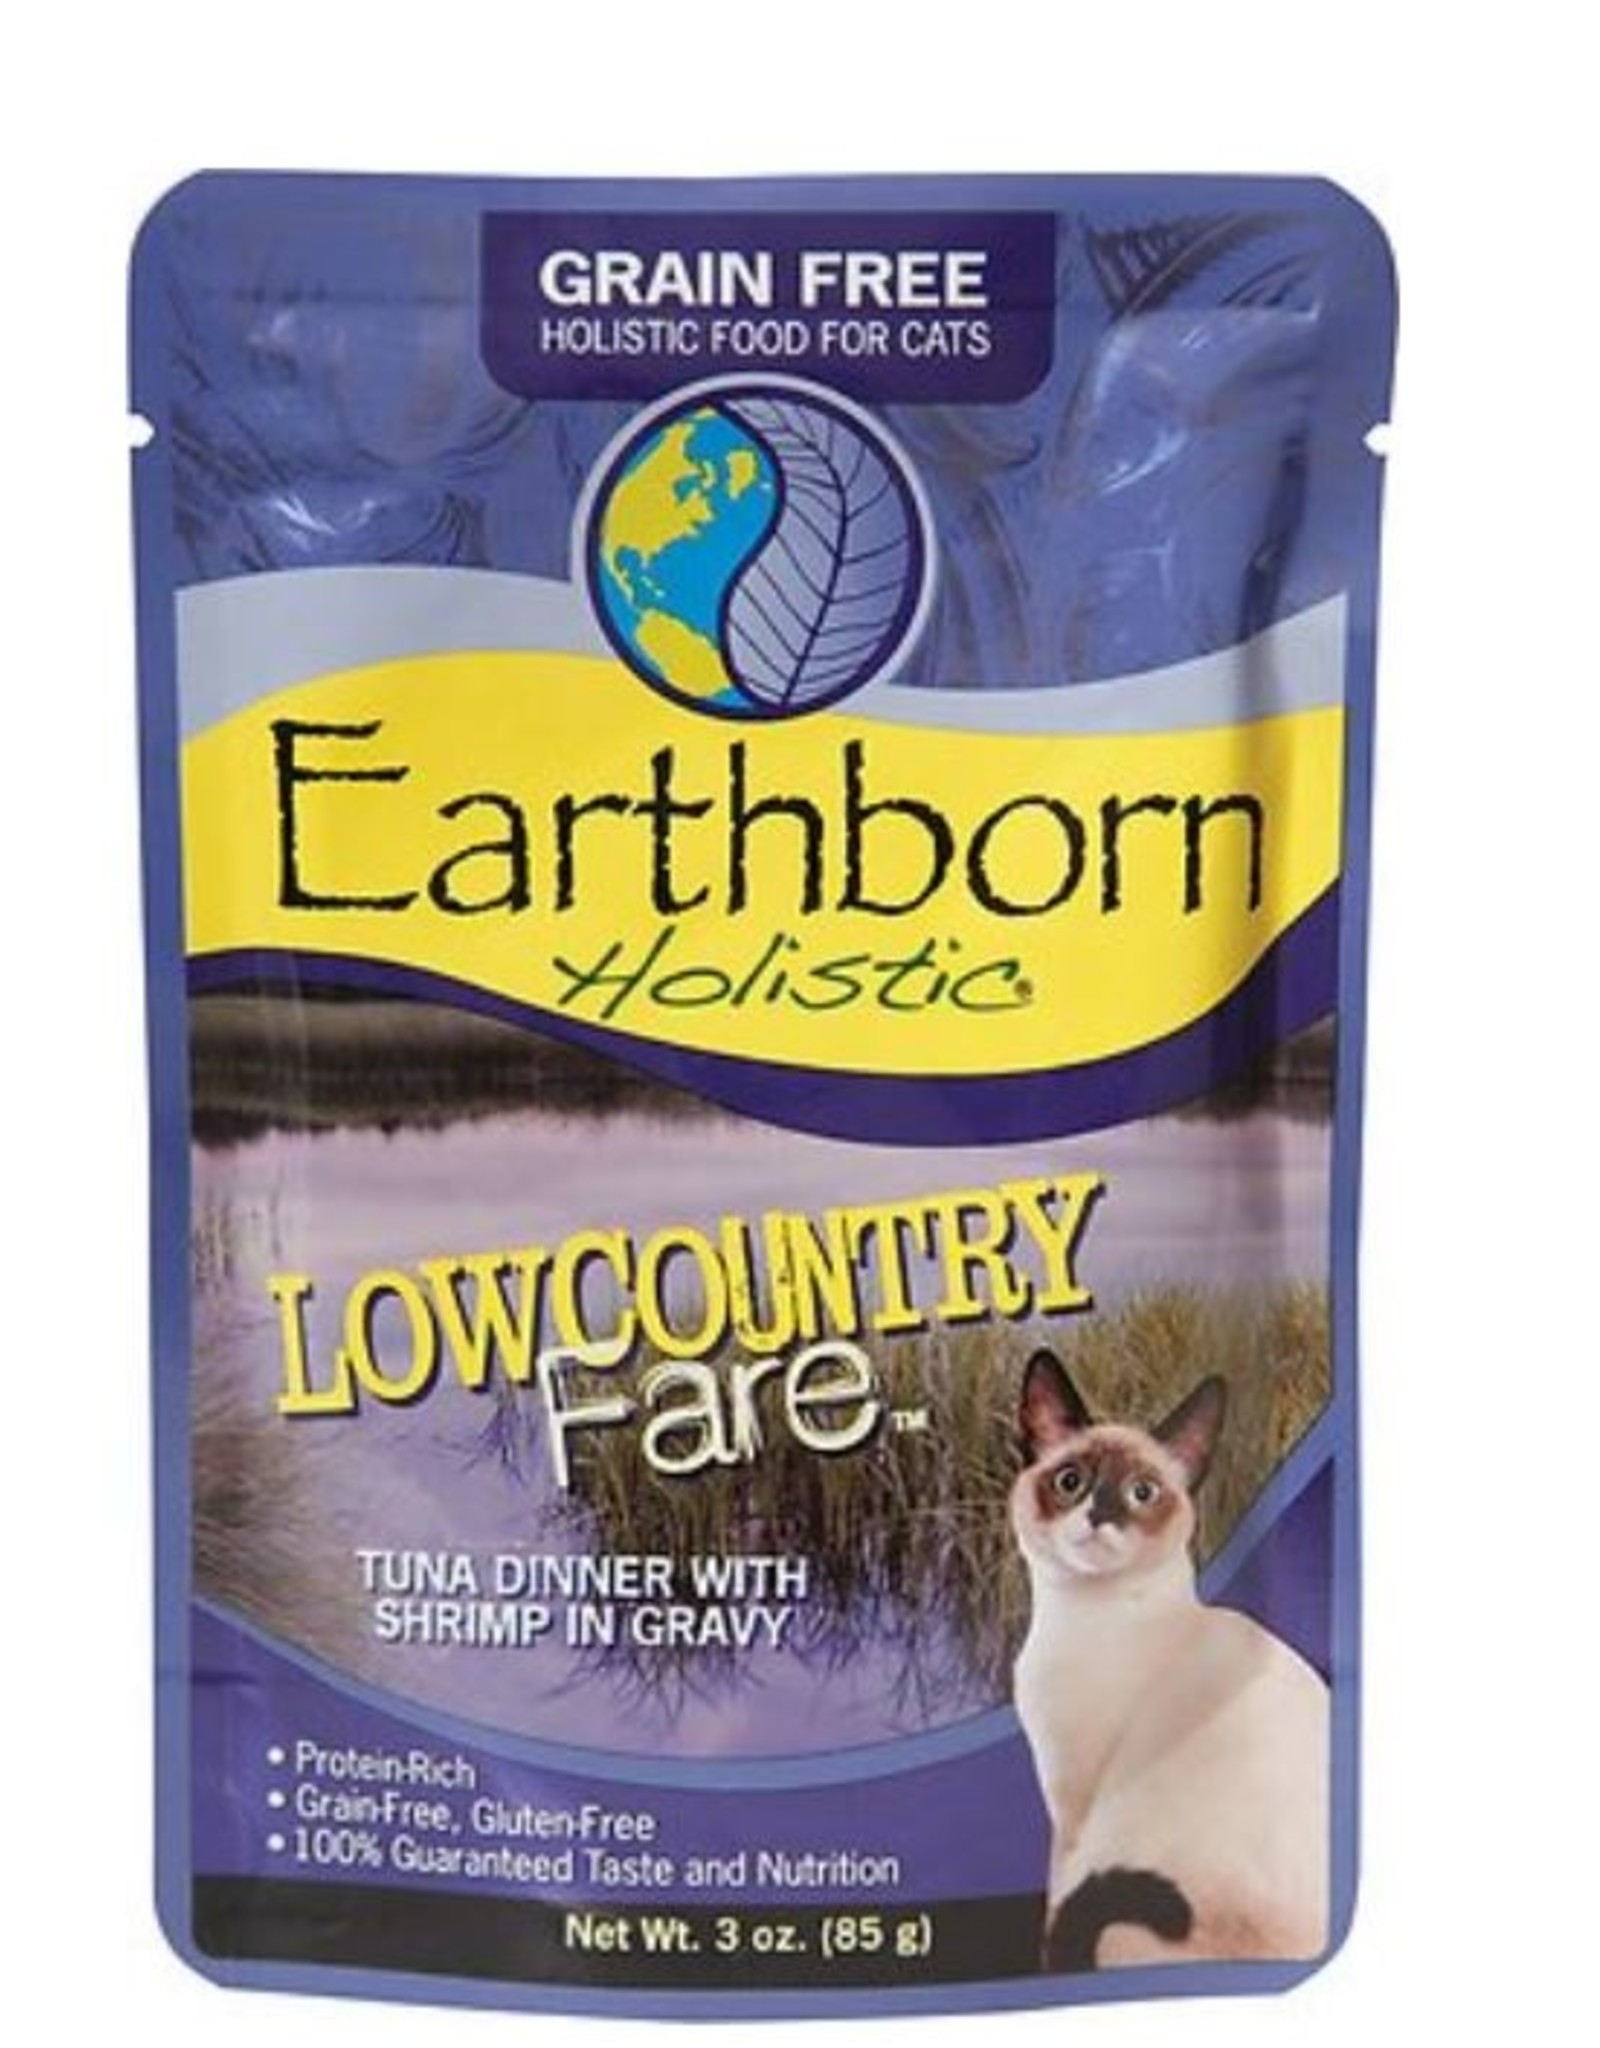 Earthborn Lowcountry Fare Cat Pouch 3oz